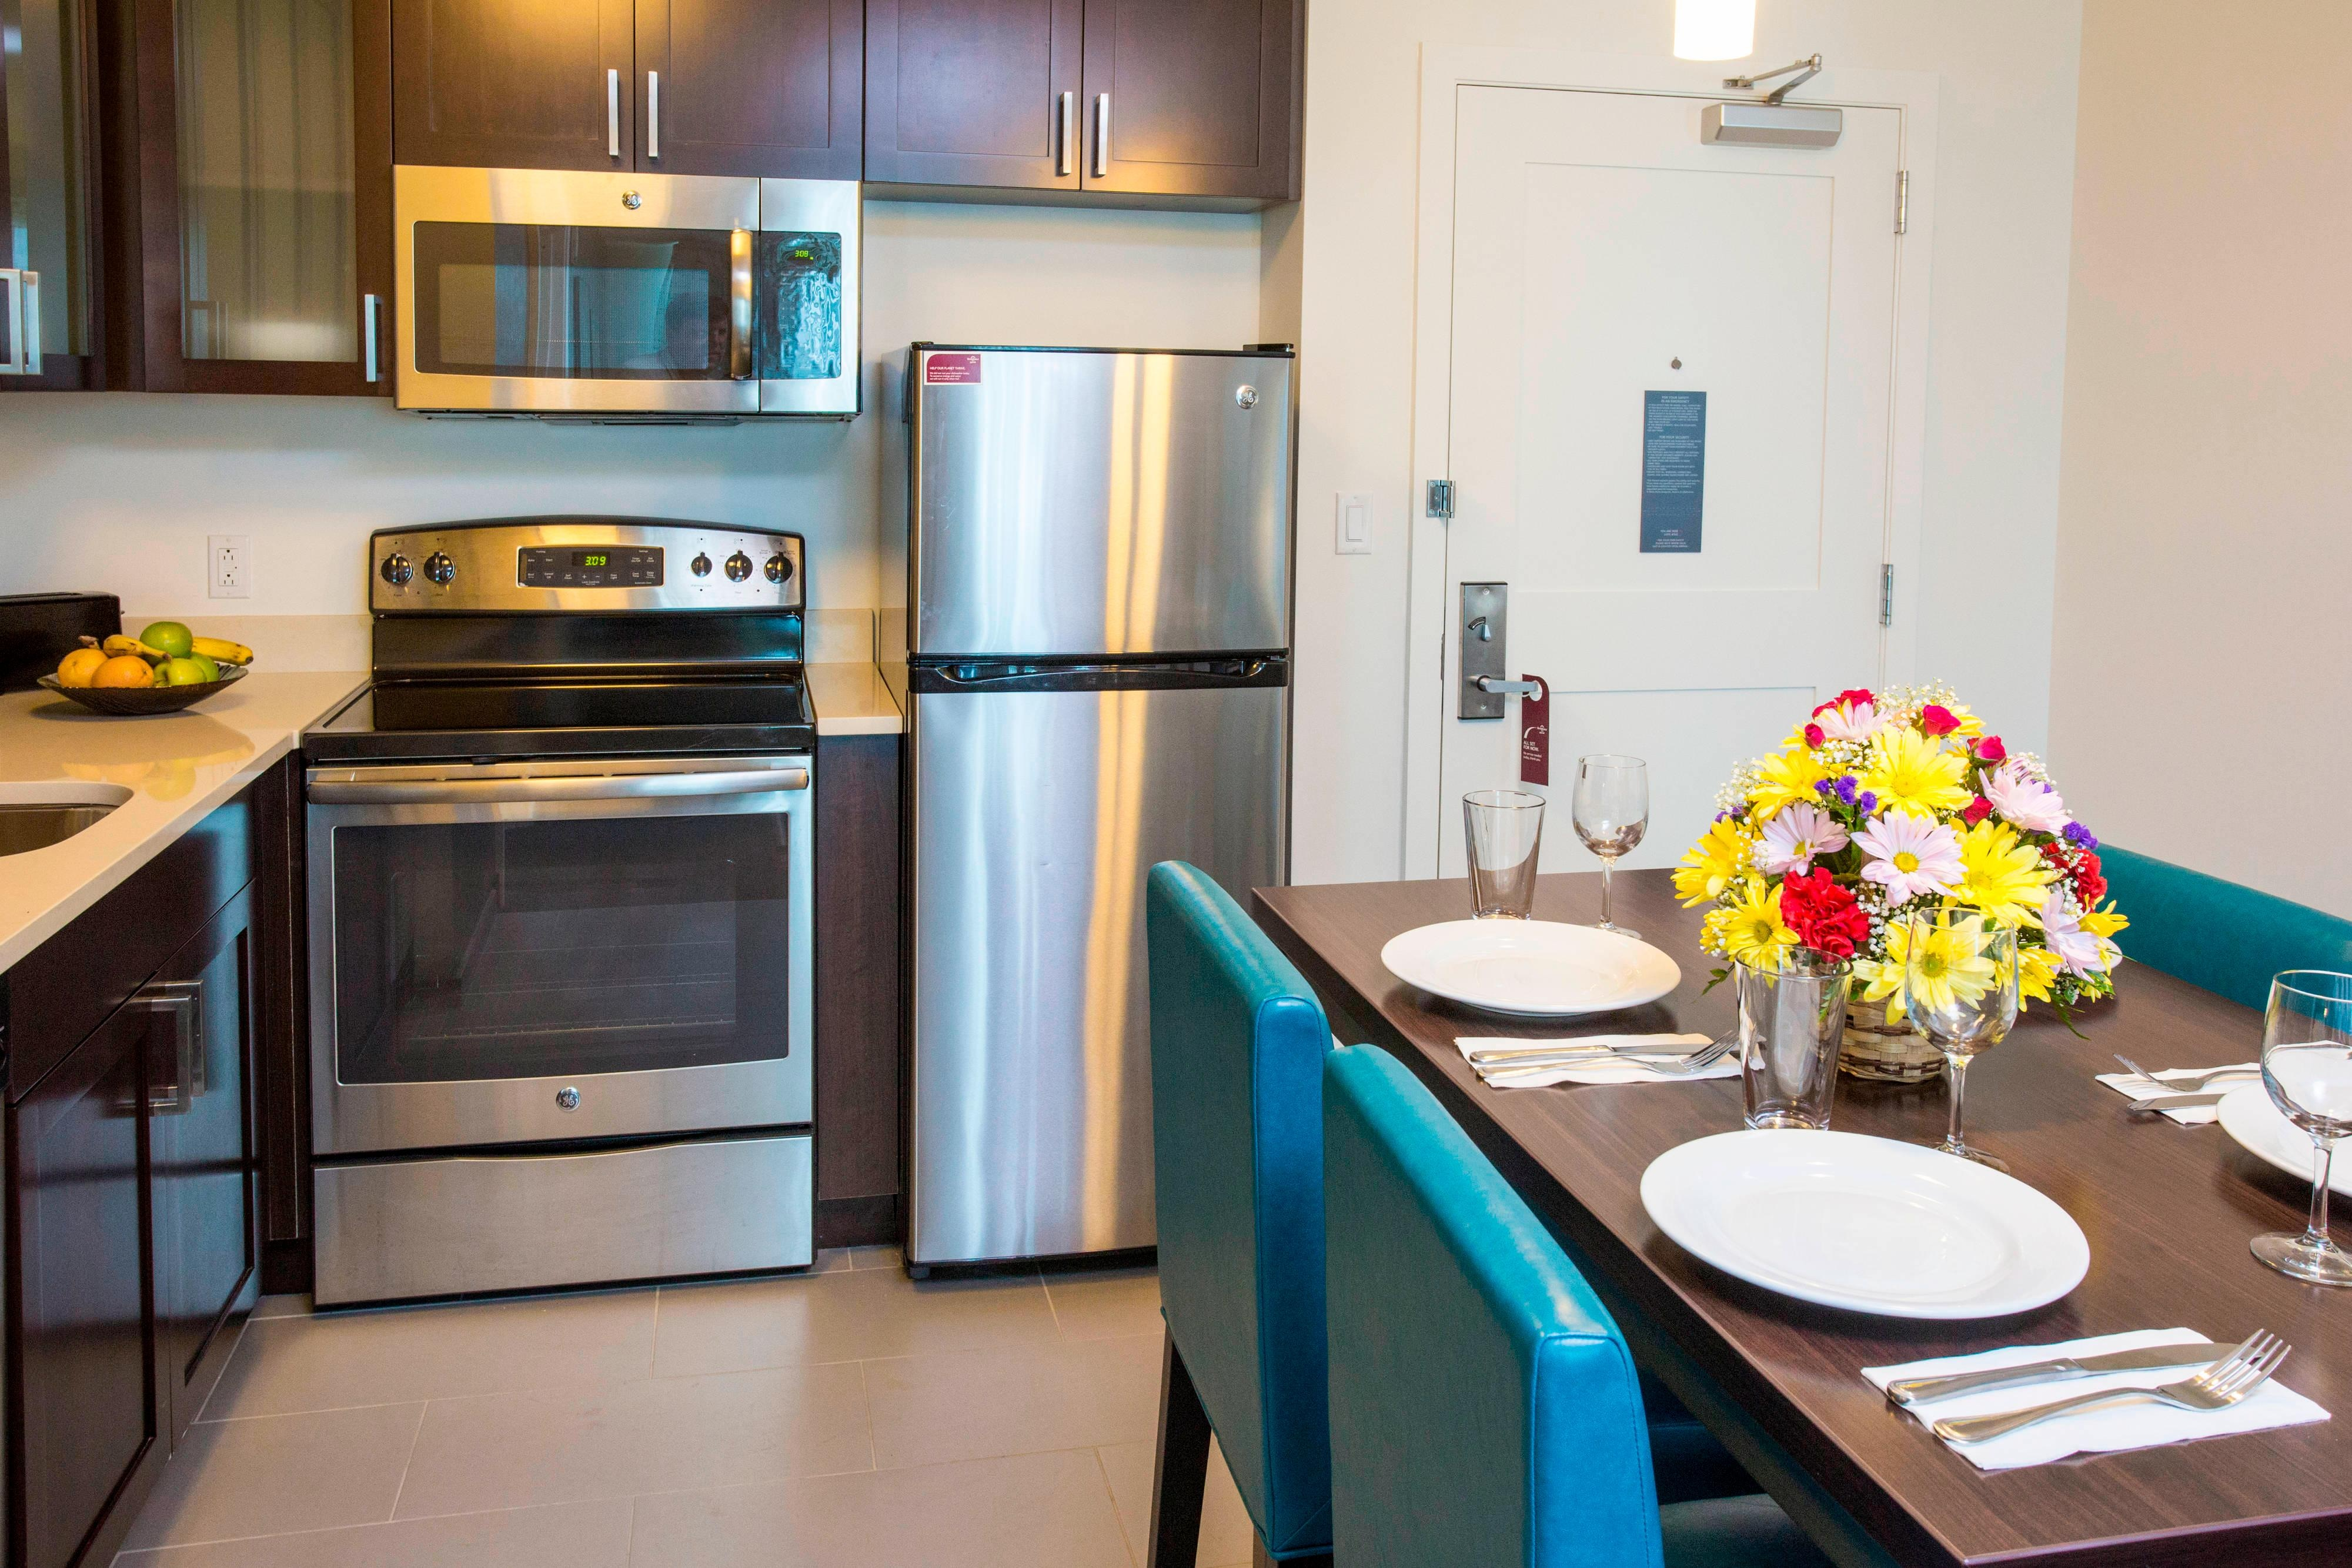 kitchen hotels kitchens in image cool coolest with nyc fresh